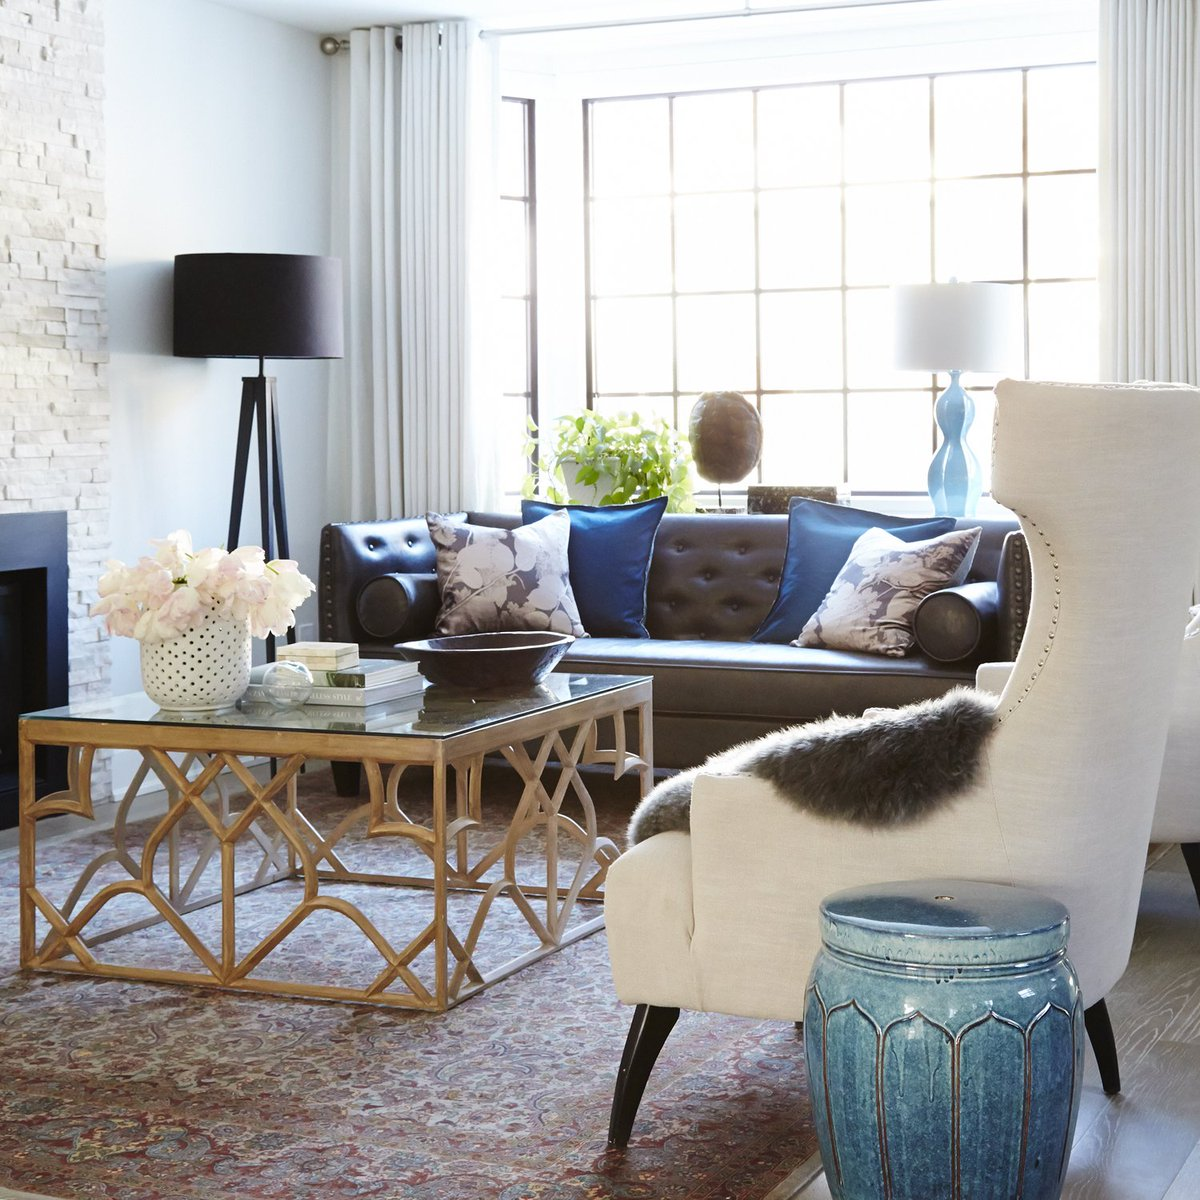 Homesense canada on twitter one great lamp deserves another homesense canada on twitter one great lamp deserves another doesnt the myhomesense industrial style floor lamp look perfectly at home with a double geotapseo Choice Image